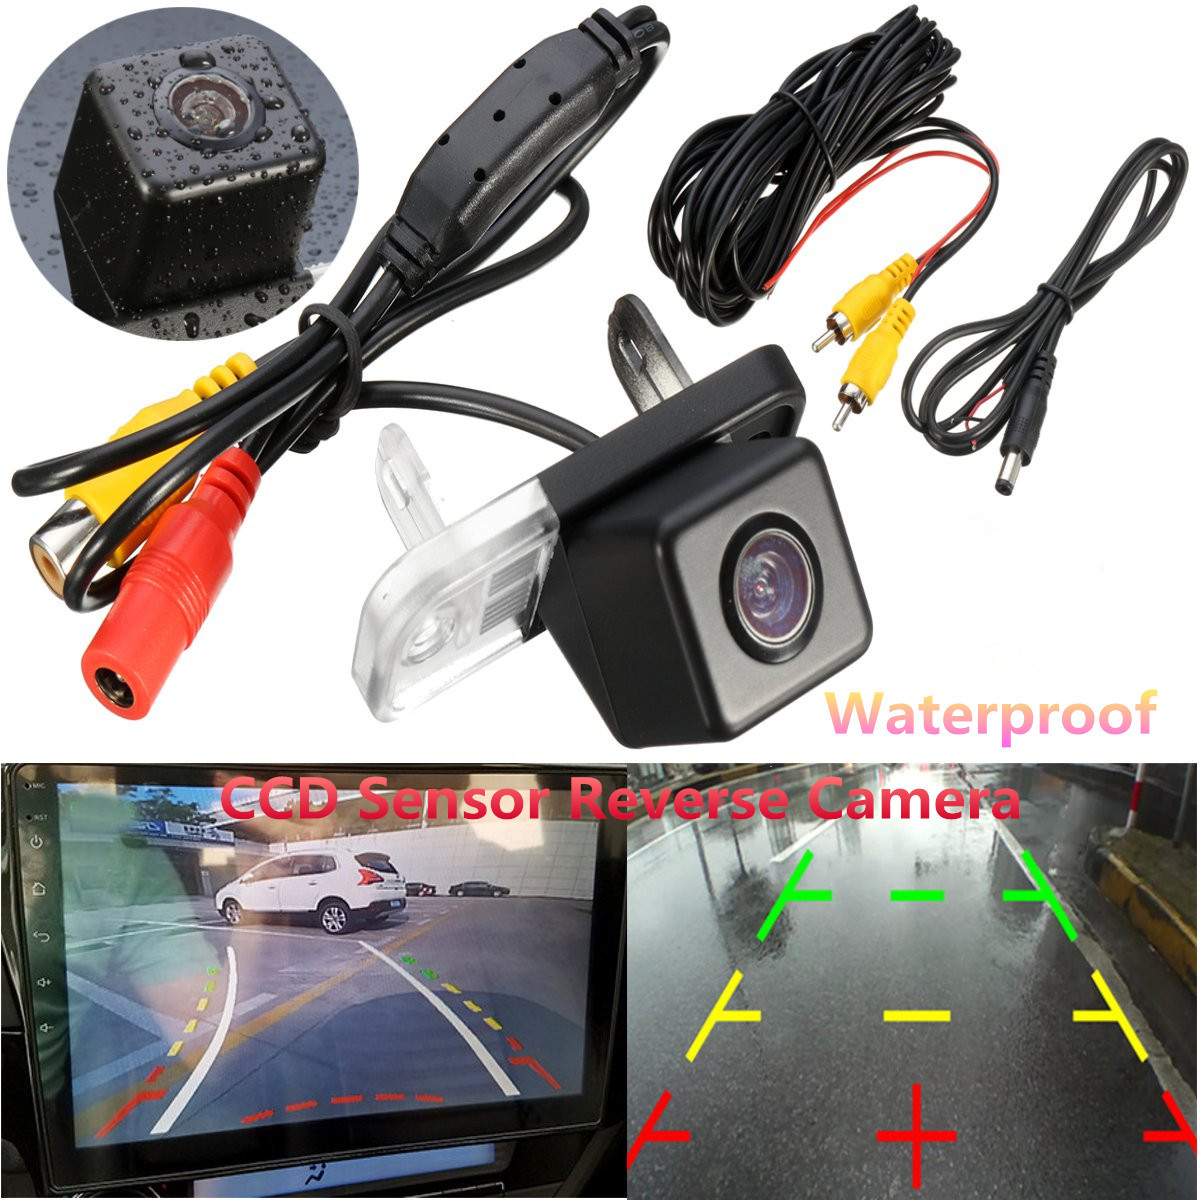 CCD HD Auto Car Rear View Camera Night Vision Waterproof Parking Reverse Camera For Mercedes Benz W209 W203 W211 W219 C Class